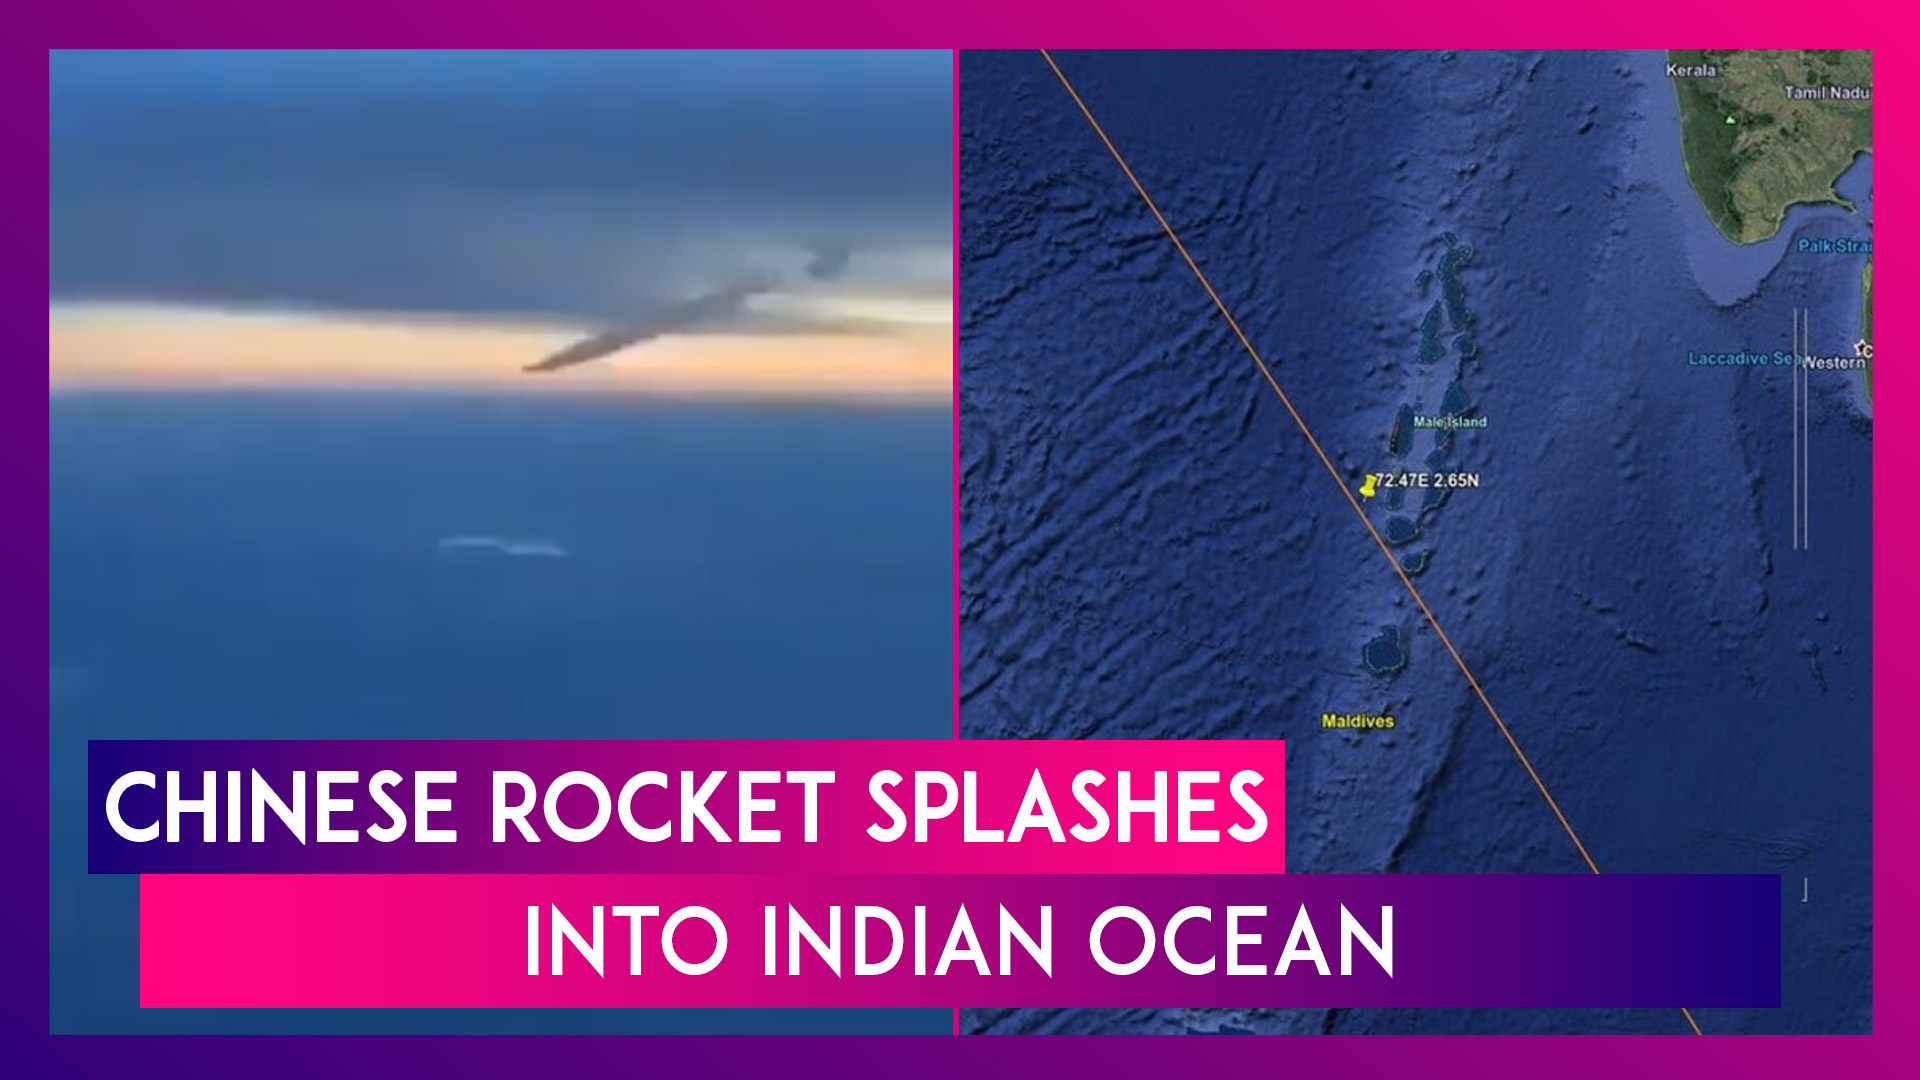 Chinese Rocket Splashes Into Indian Ocean, Crashes Near Maldives